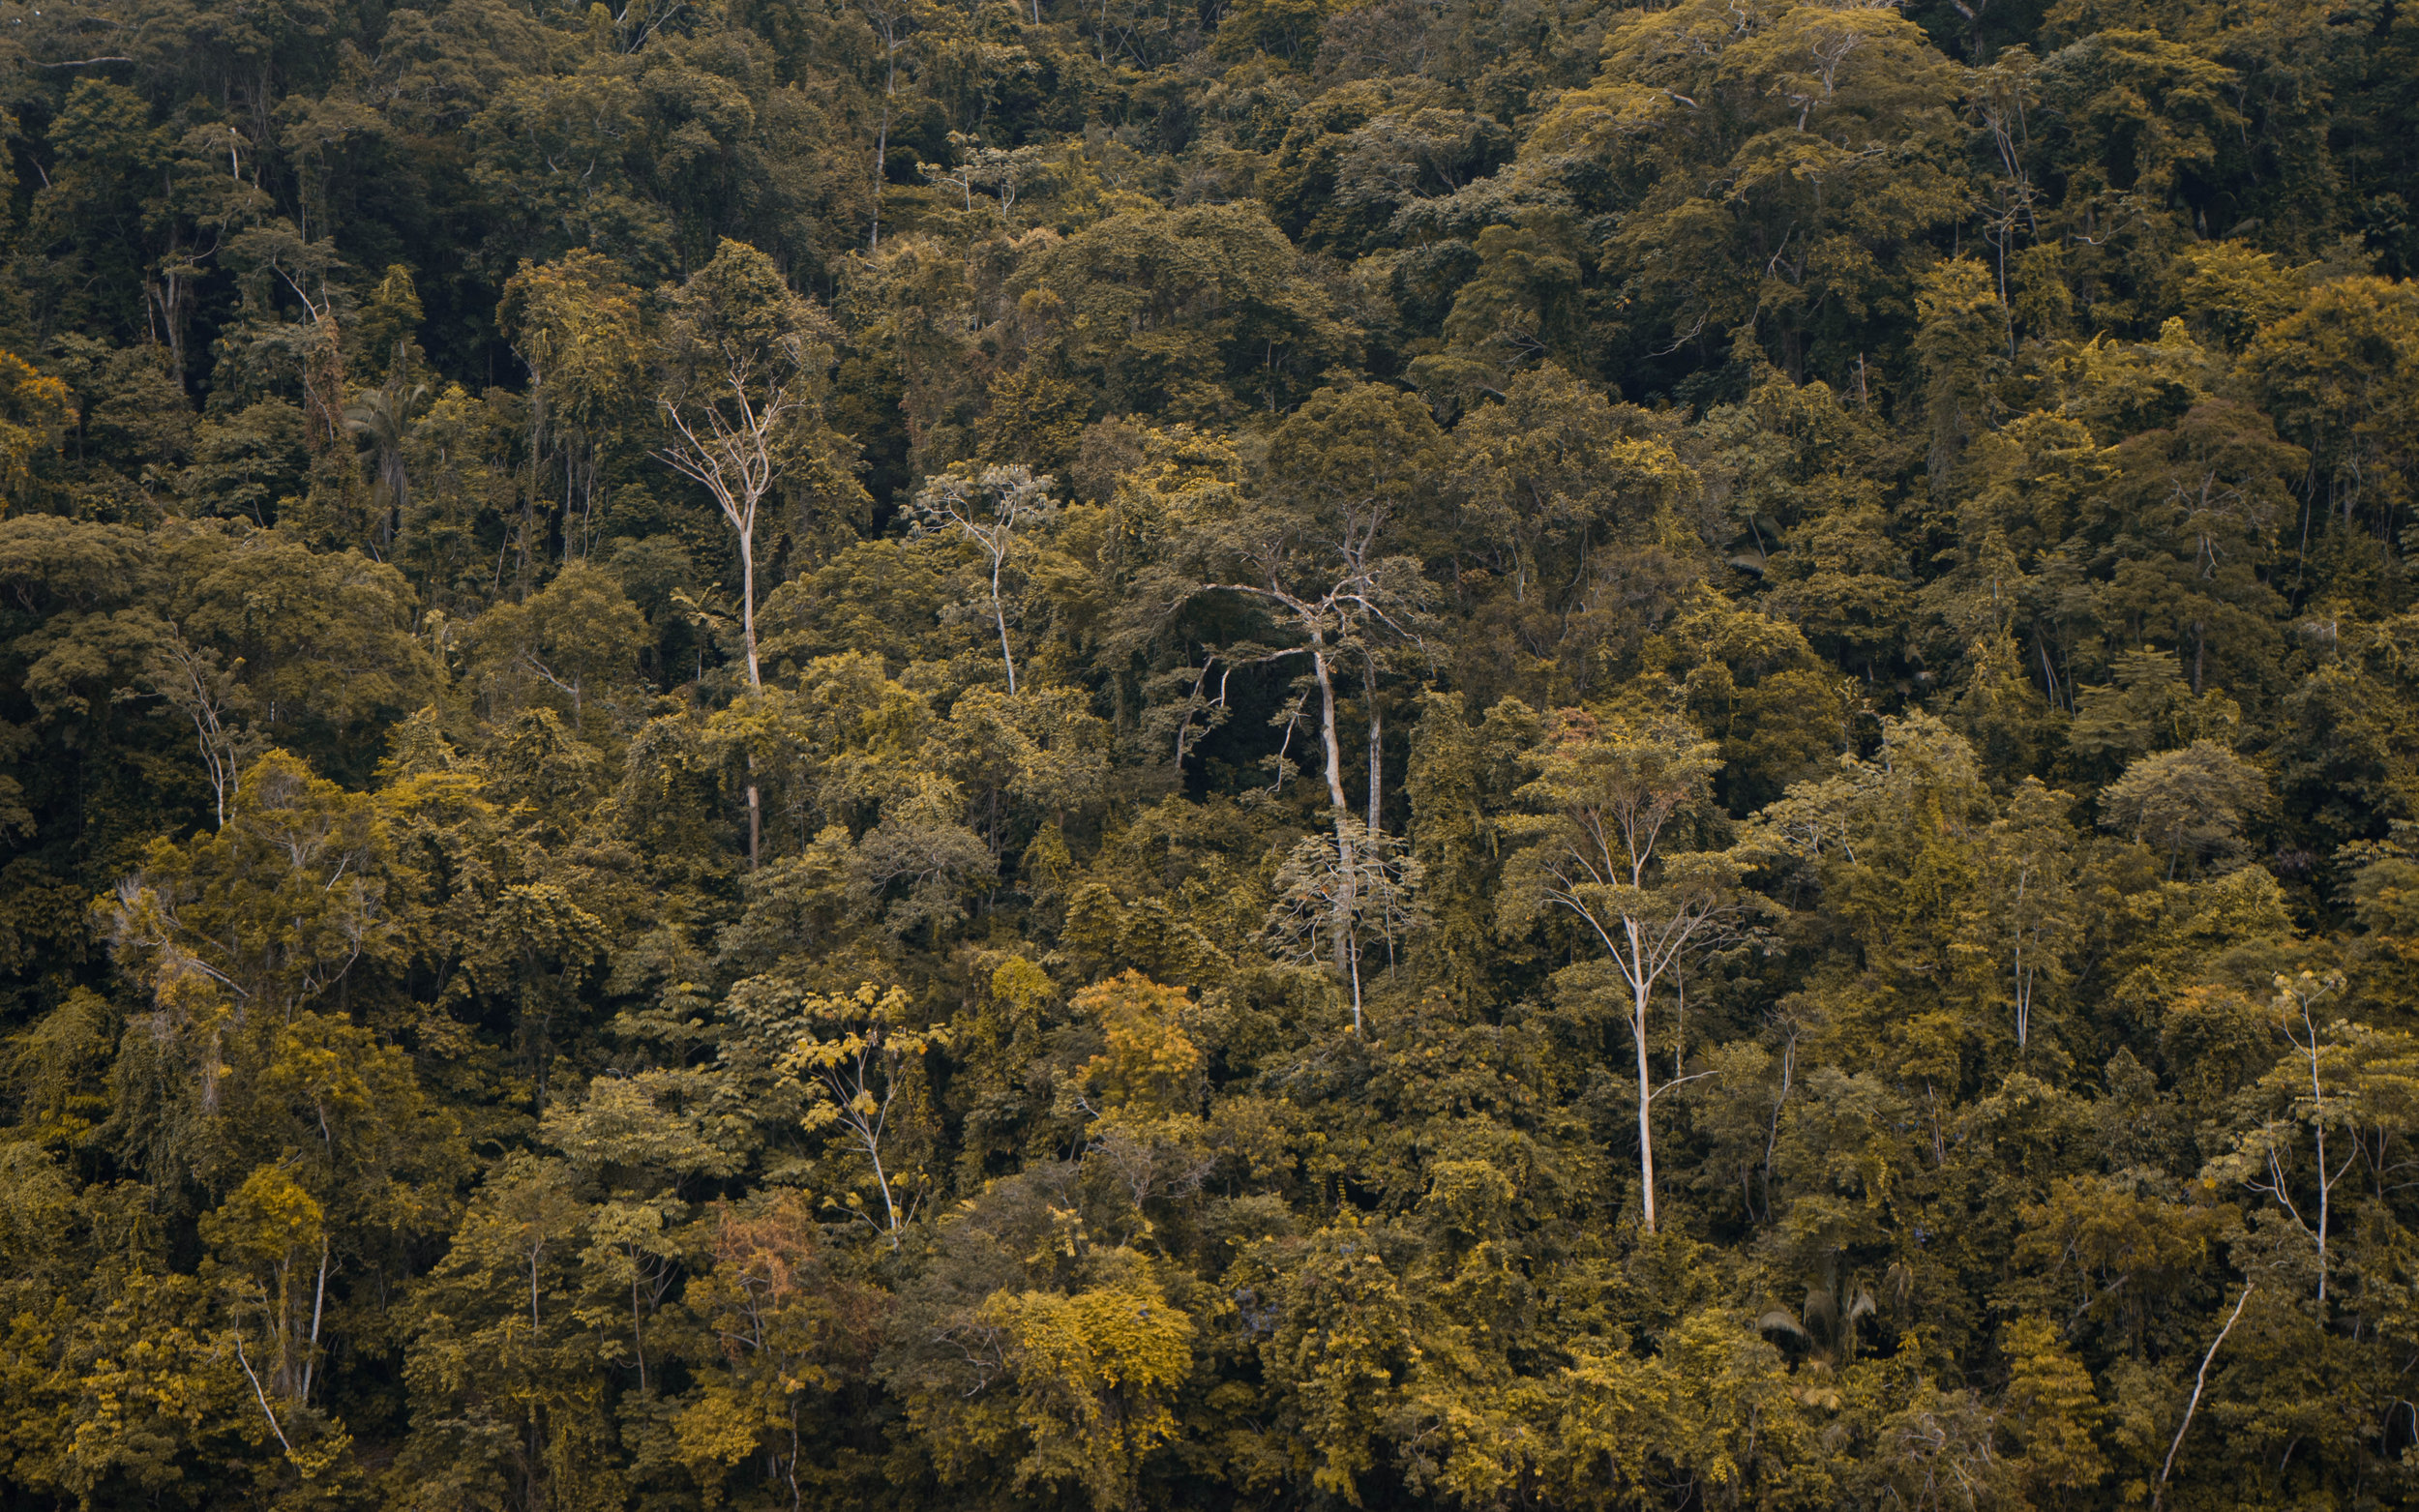 RAINFORESTS PROVIDE GLOBAL OXYGEN - THEY ARE EARTHS LUNGS -